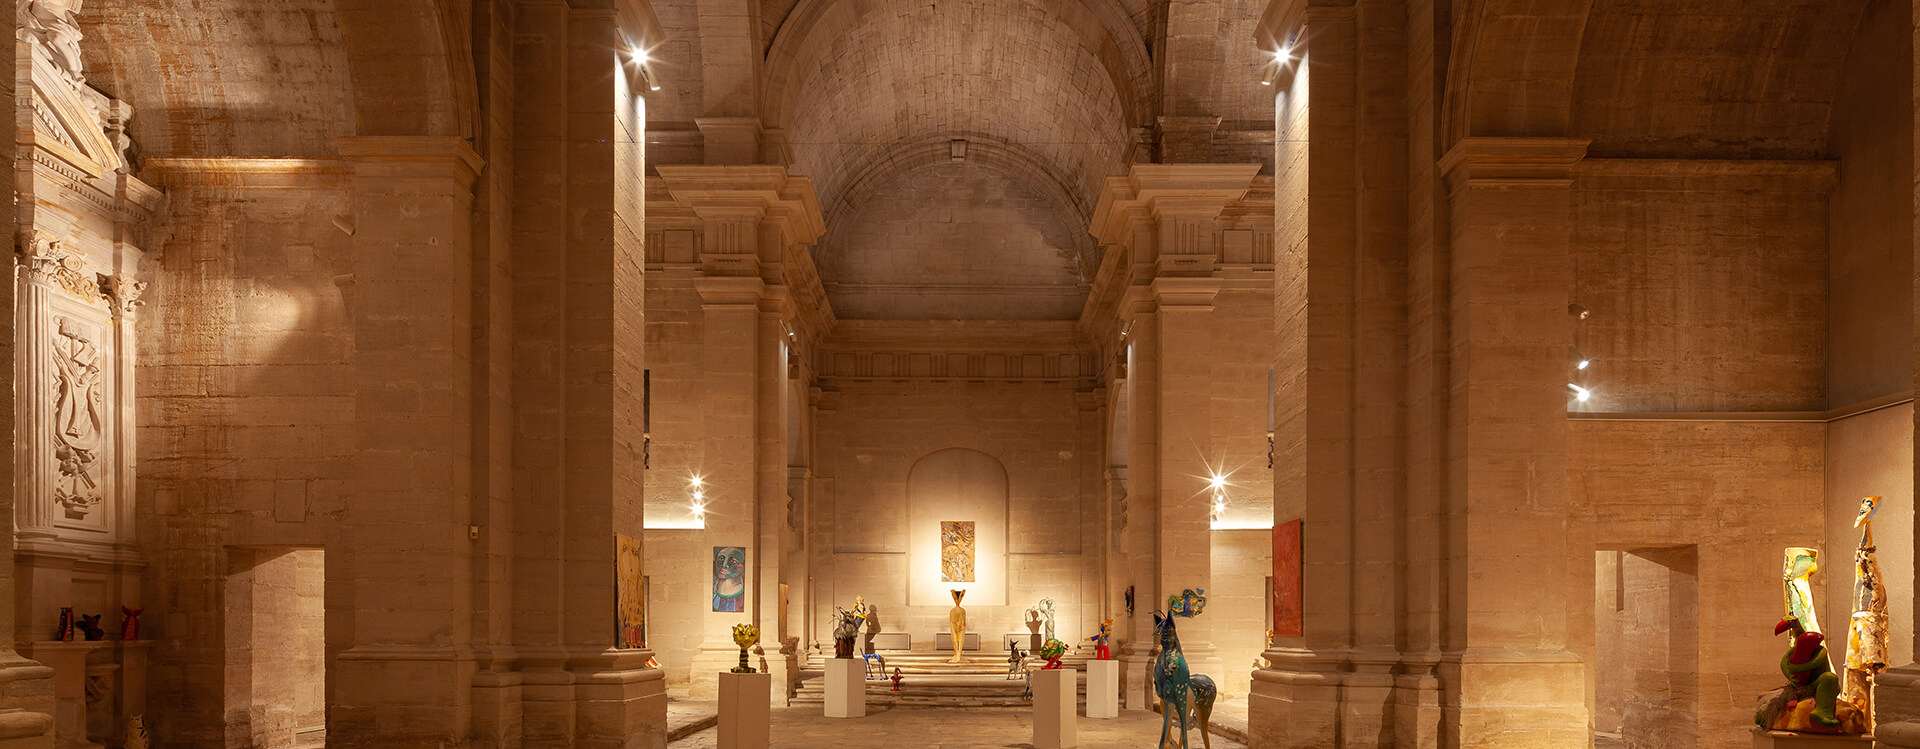 Chapelle du College Lighting Project Targetti